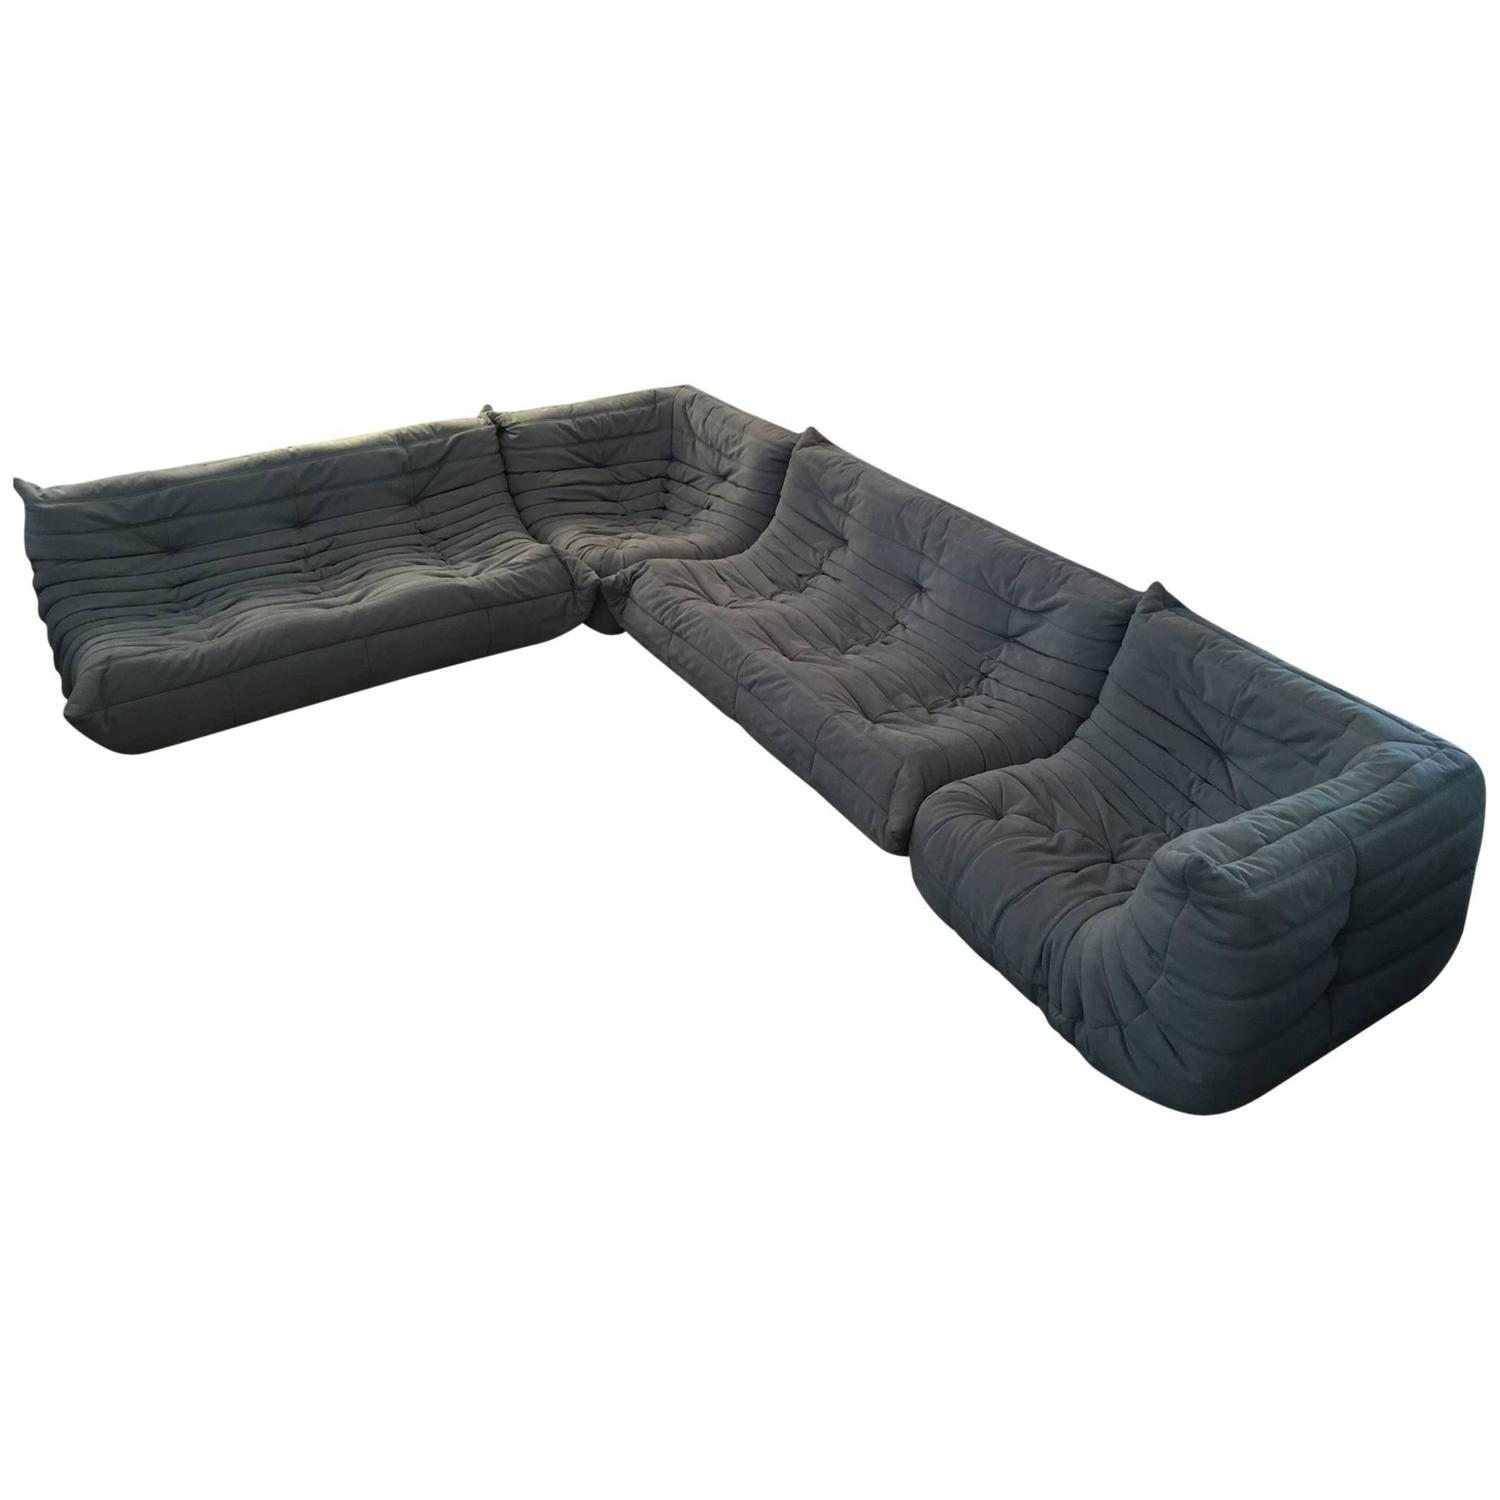 Original 1980s Ligne Roset Togo Five Pieces Sofas Designed by Miche...